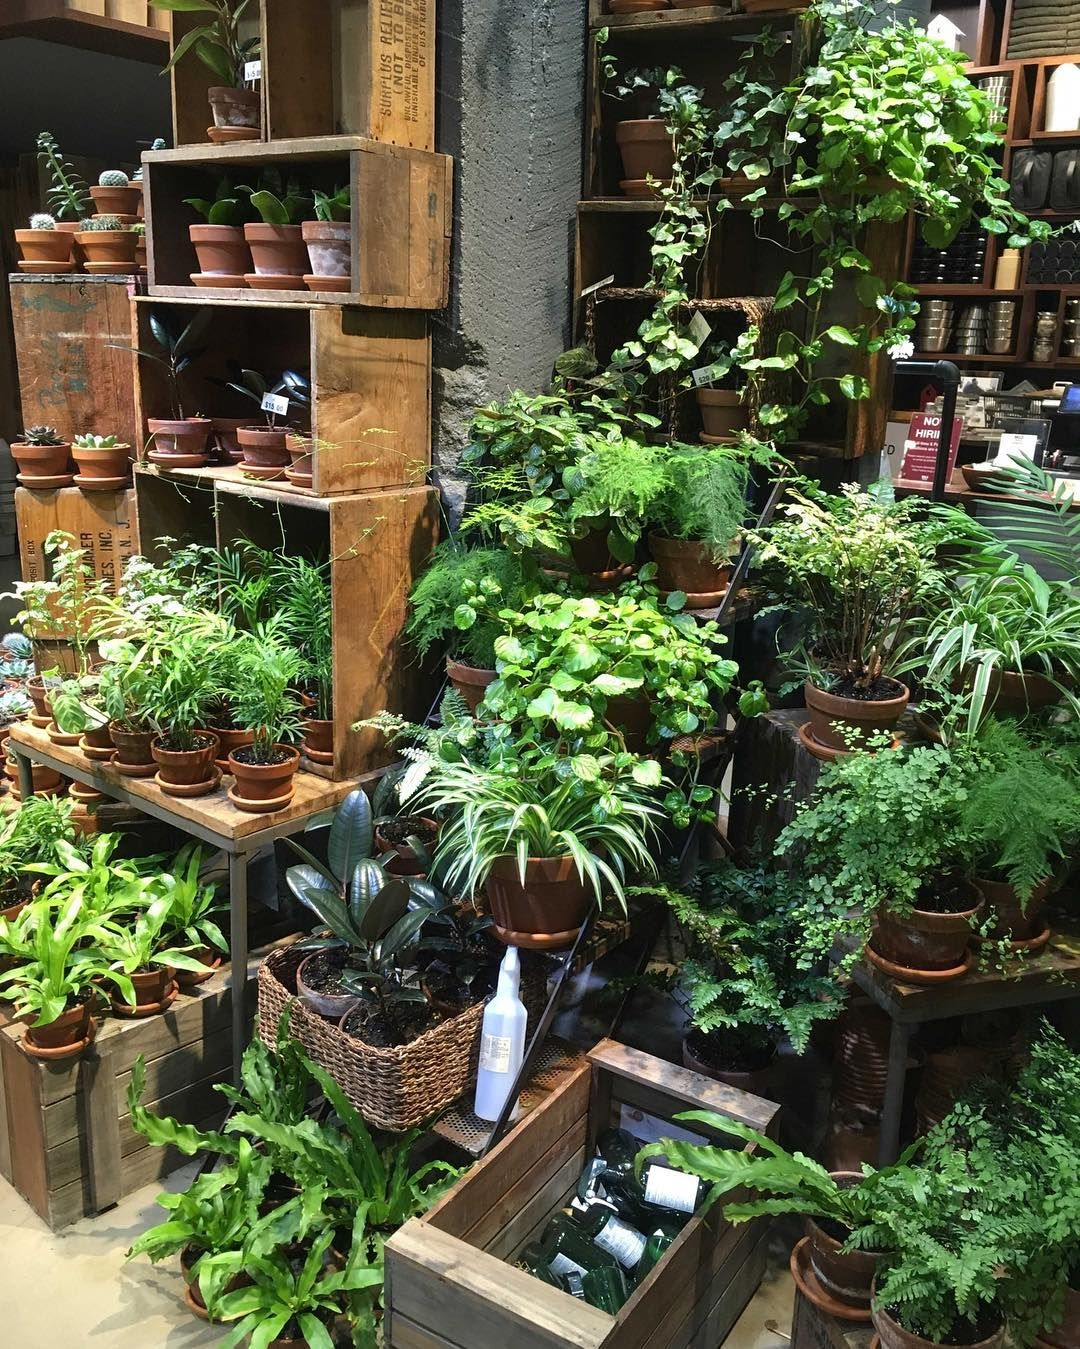 MUJI shop in New York with plants and realexing products